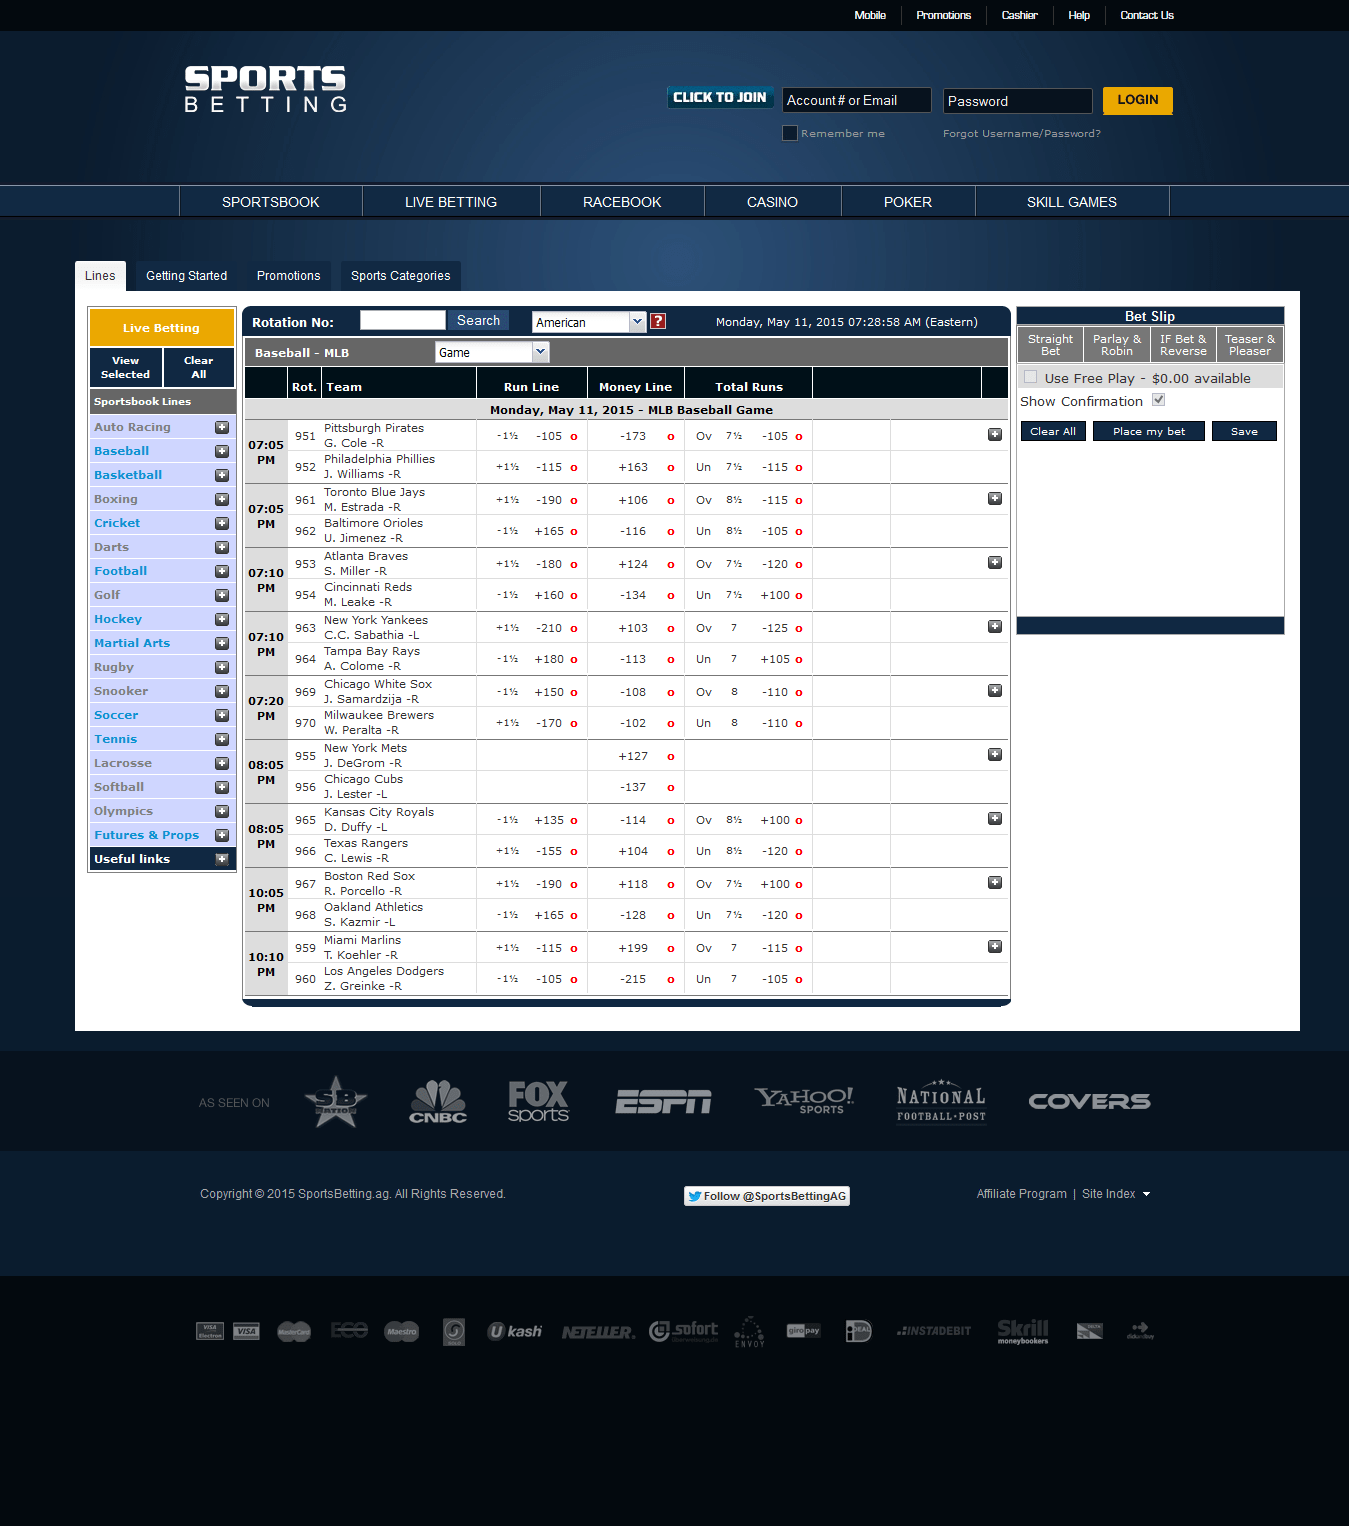 sportsbetting screen